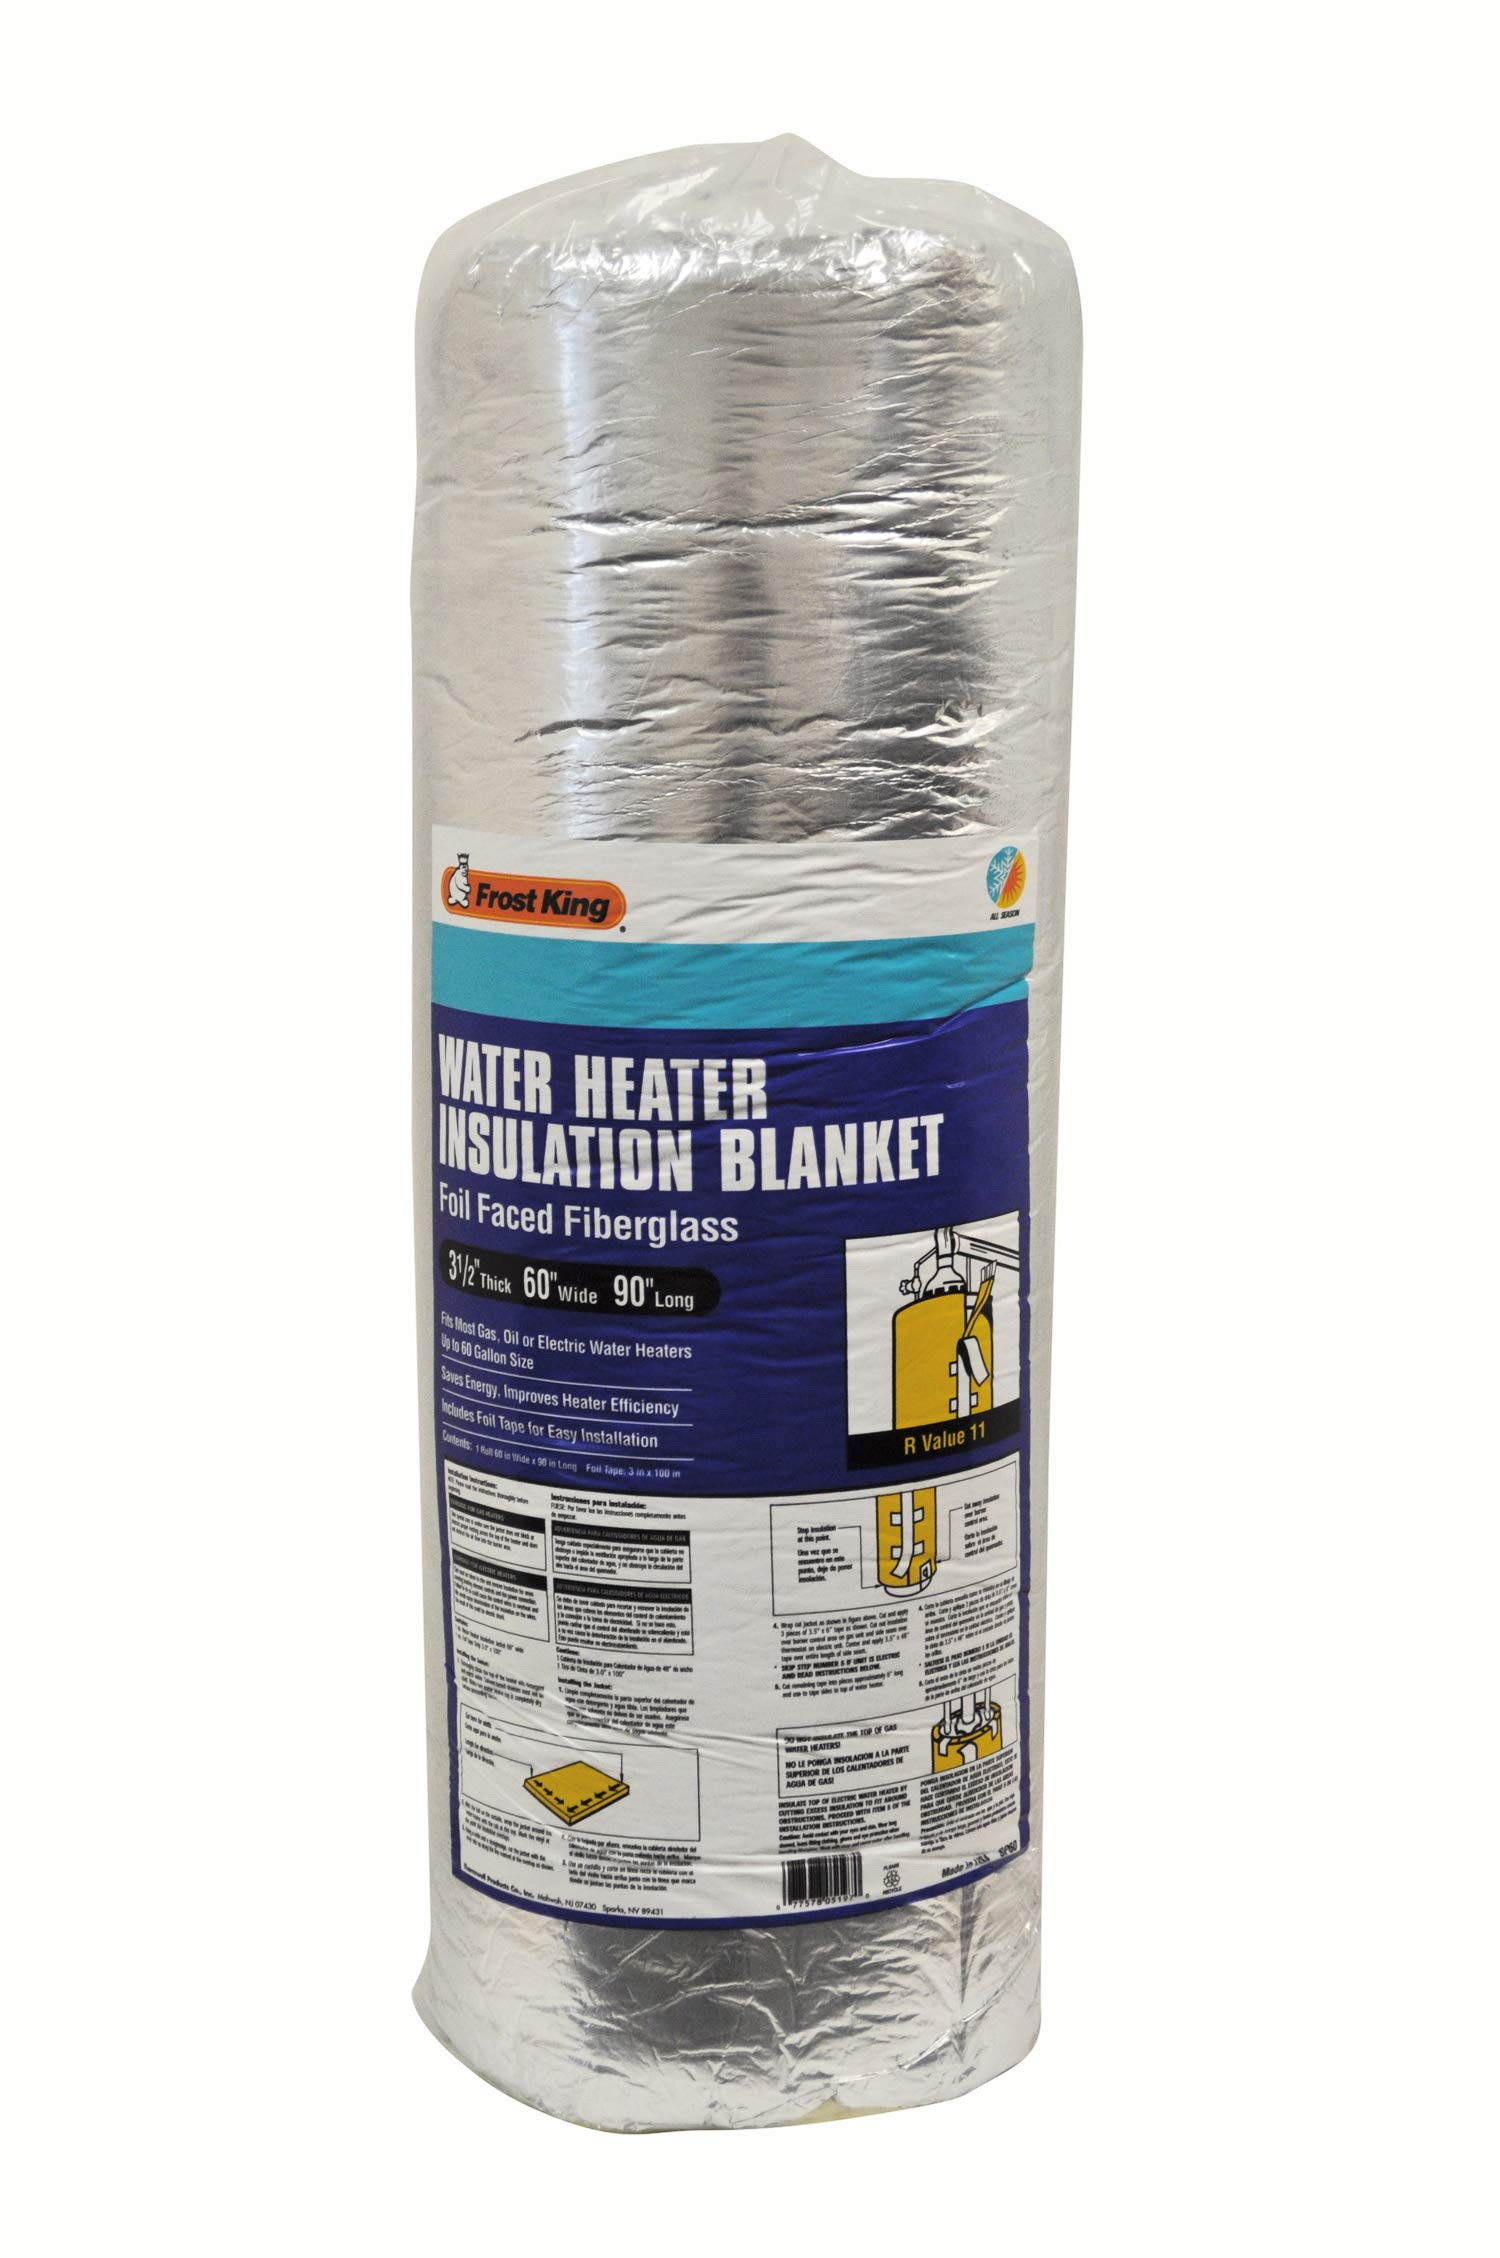 Frost King SP60 All Season Water Heater Insulation Blanket, 3'' Thick x 60'' x 90'', R10 by Frost King